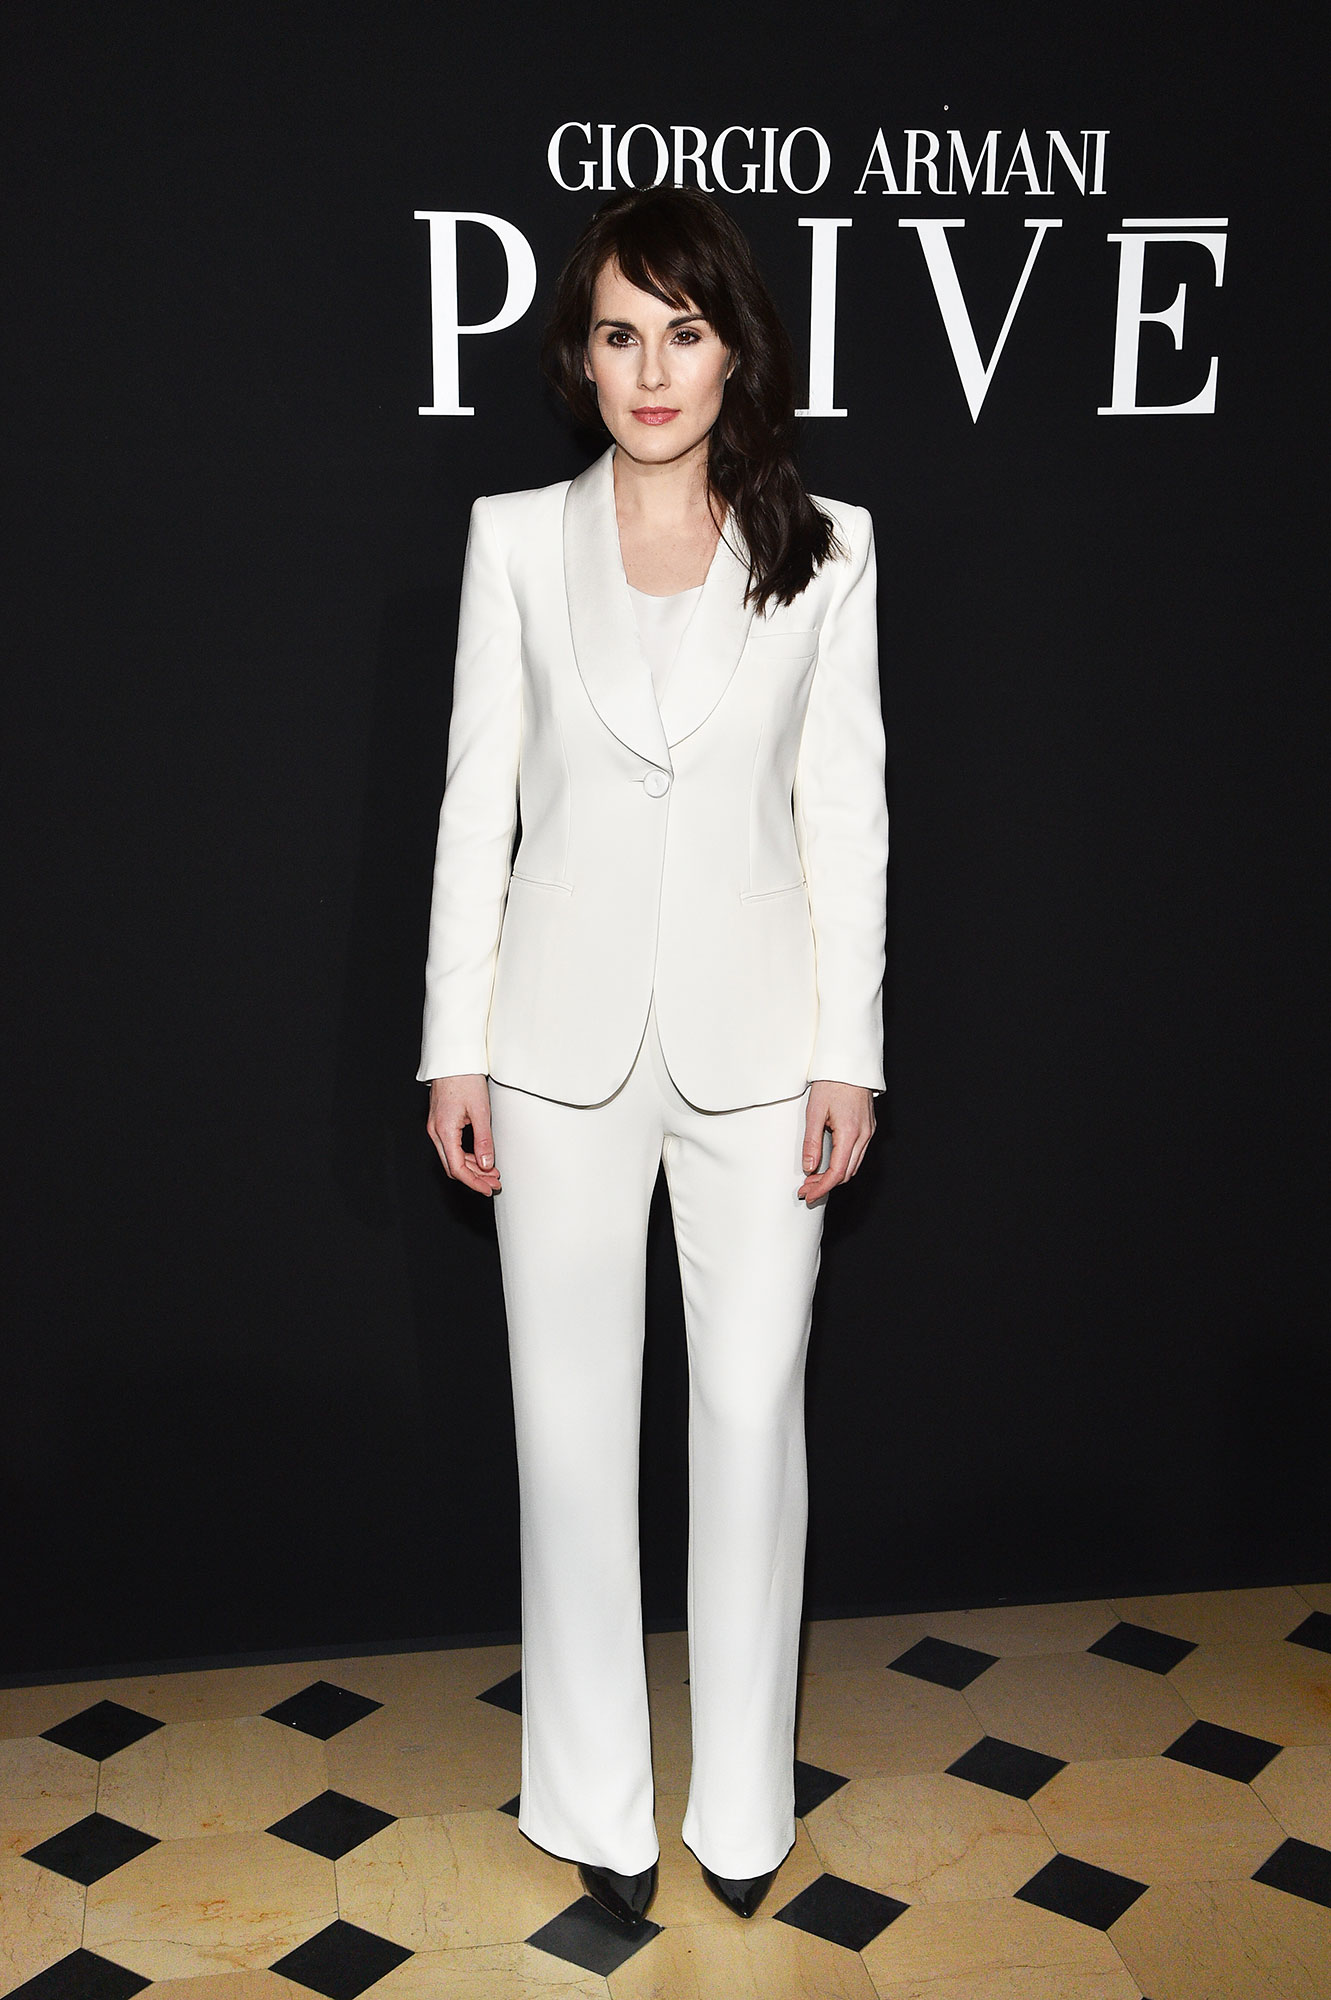 Michelle Dockery - The Downtown Abbey star looked like an HBIC in her all-white-everything two piece at Giorgio Armani Prive on Tuesday, January 22.